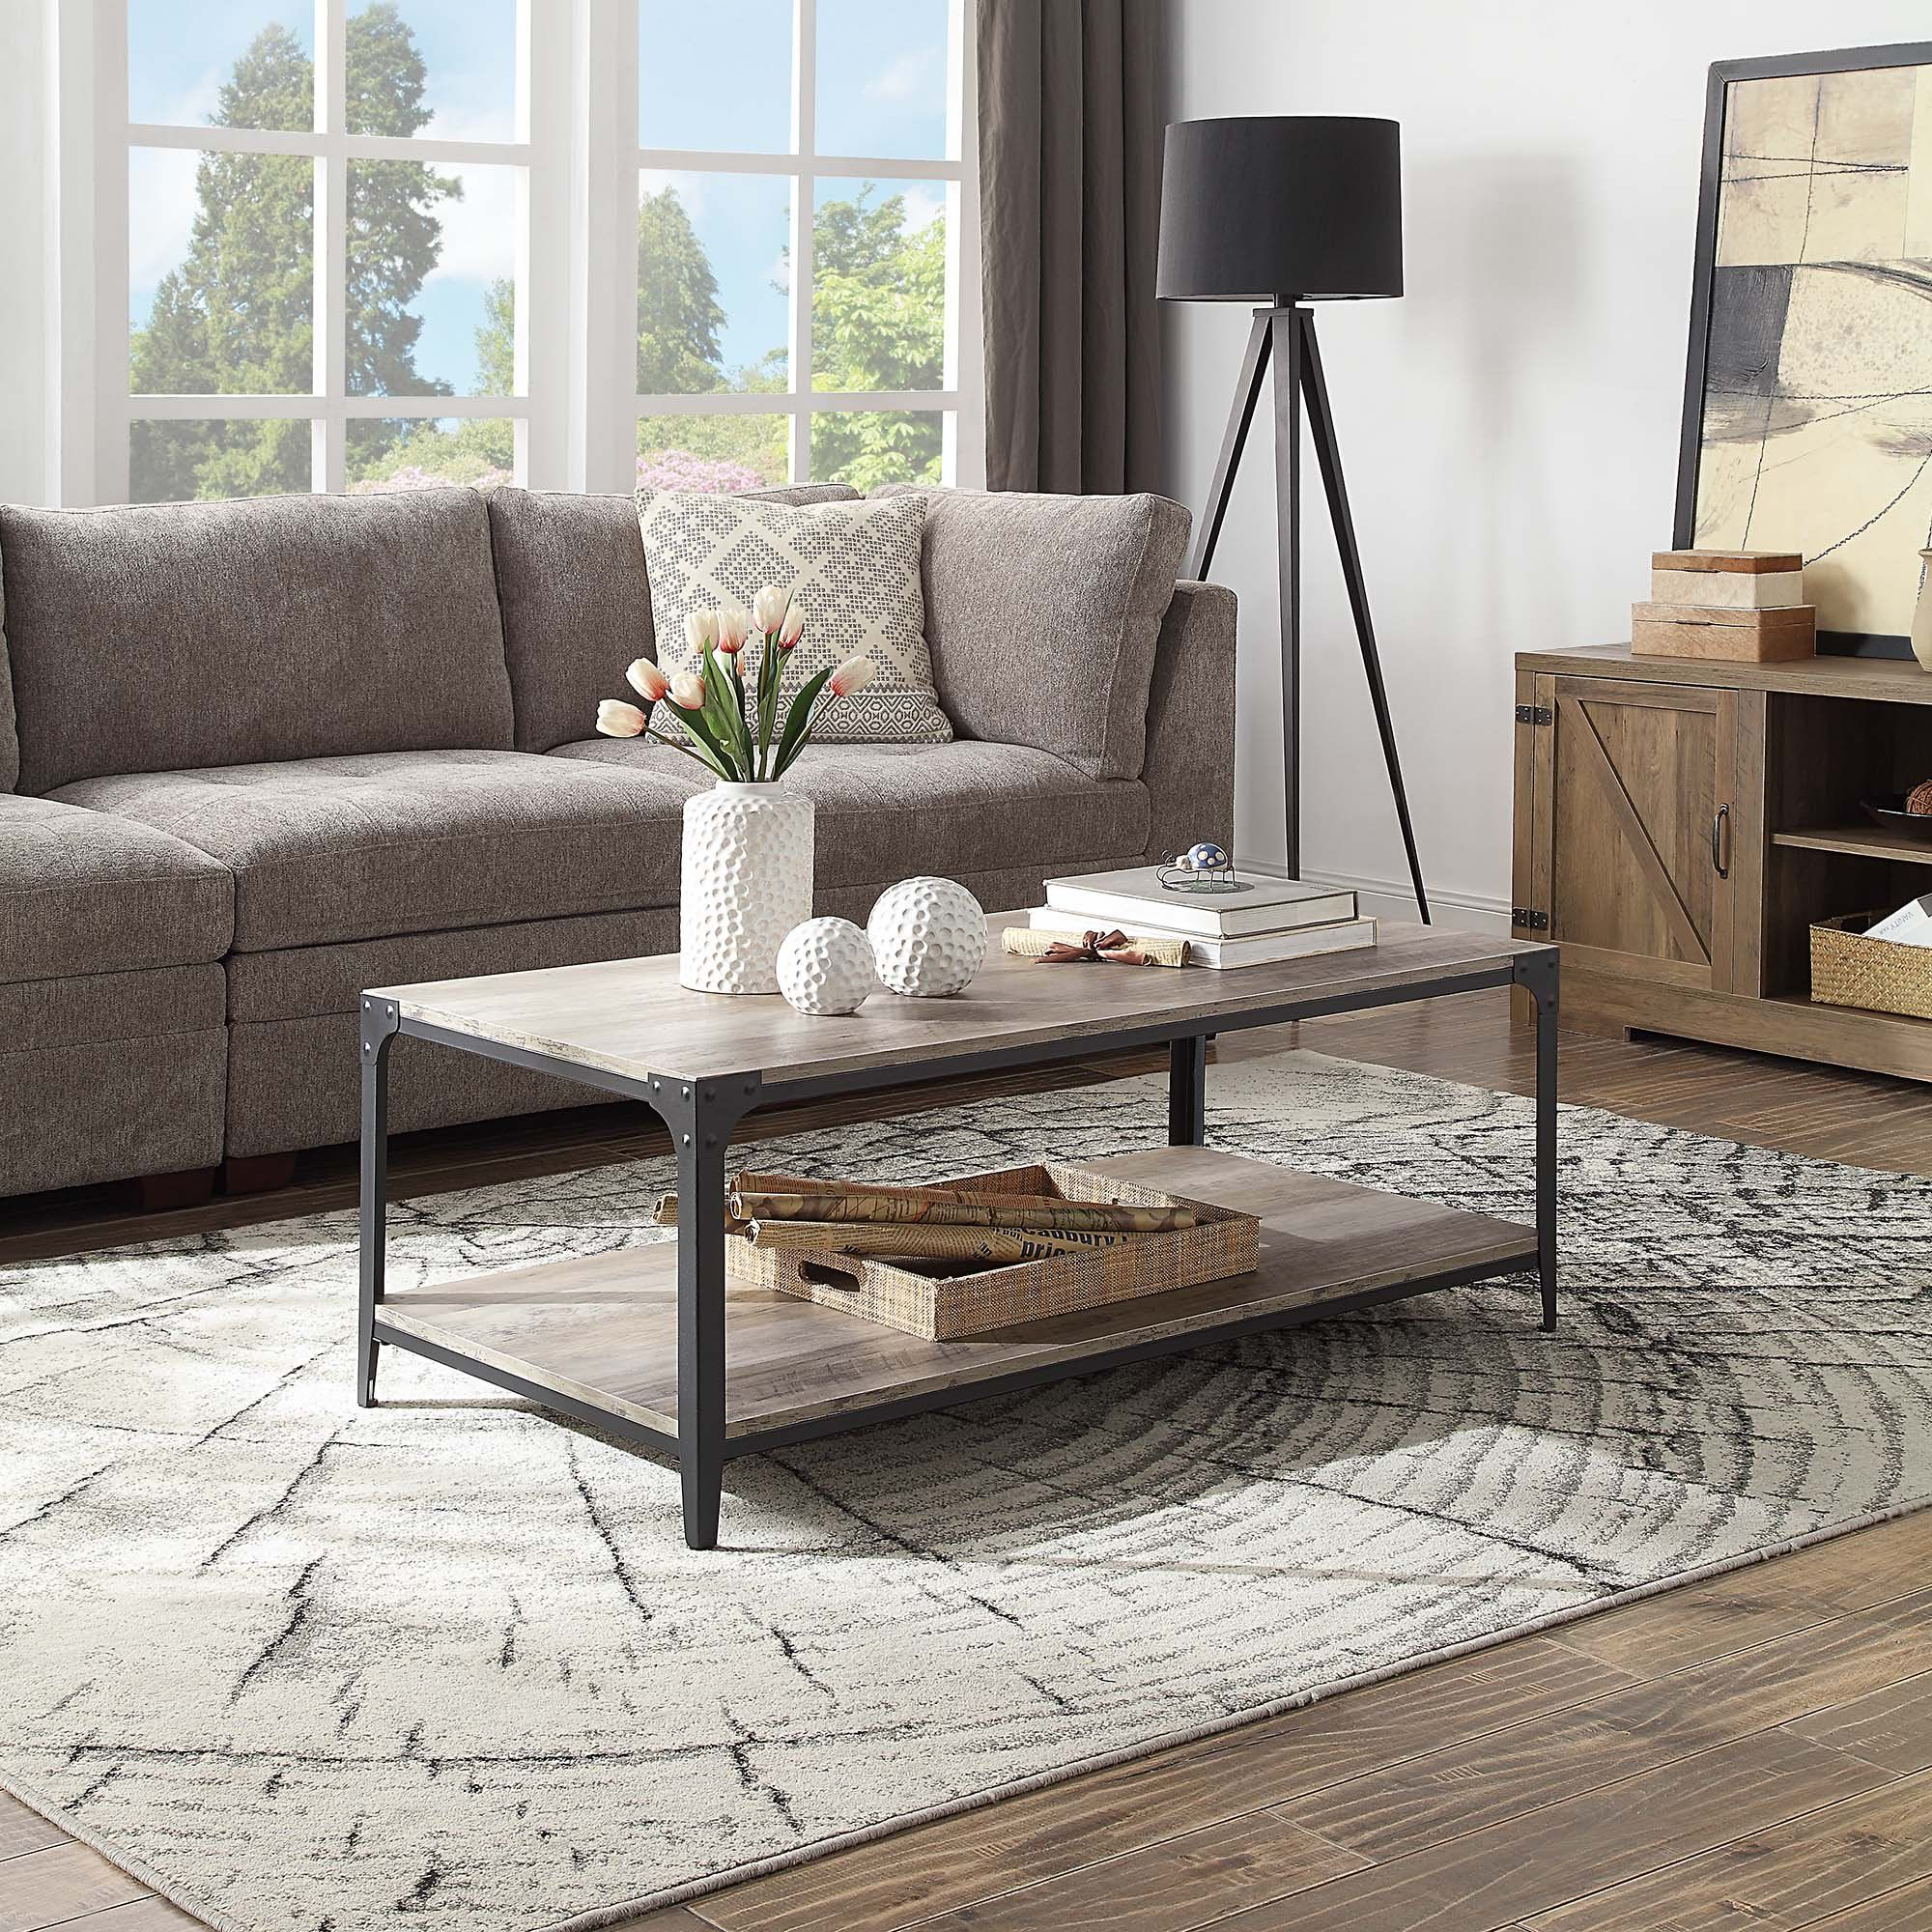 Belleze 48 Coffee Table With Storage Shelf Metal Frame For Living Room Walmart Com In 2021 Coffee Table Coffee Table With Storage Living Room Table Living room table gray